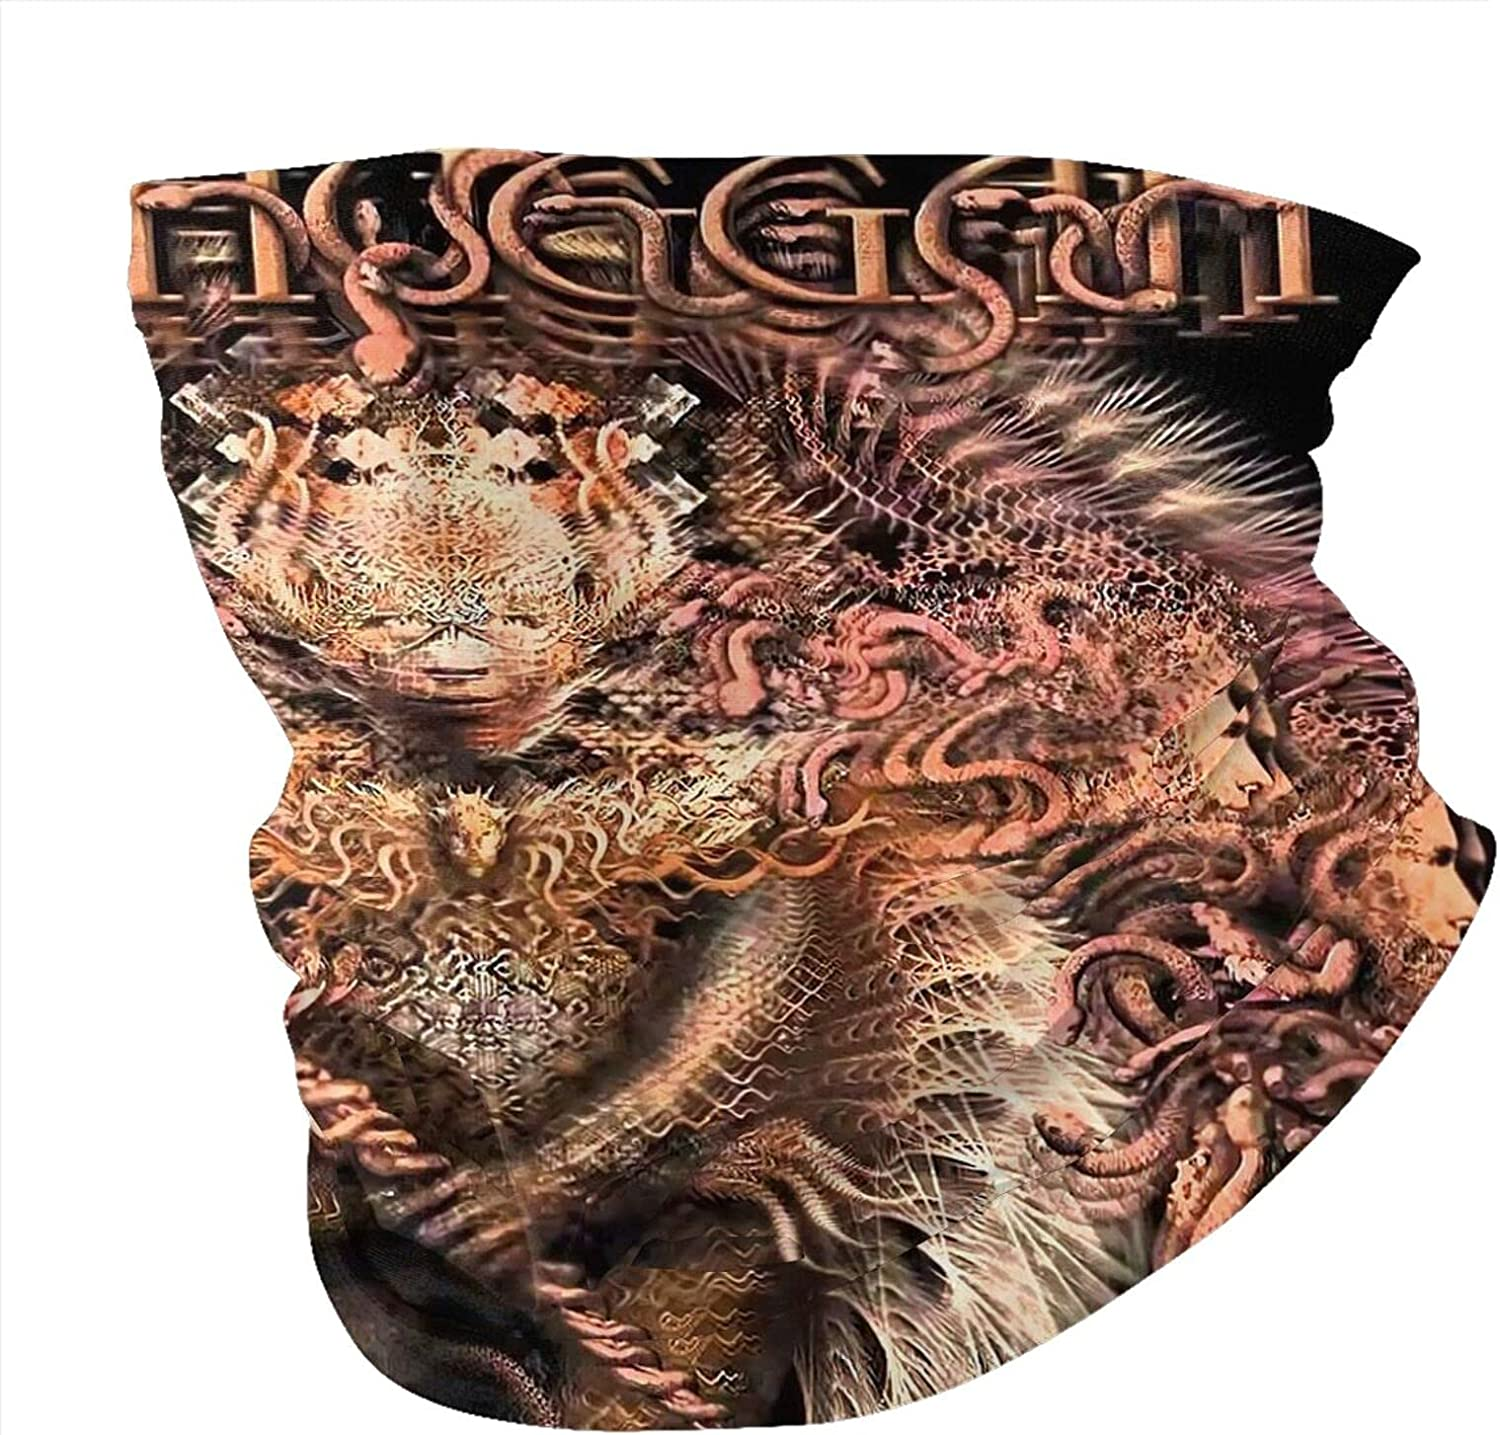 Meshuggah Unisex Neck Gaiter Face Mask Man Womans Multifunction Balaclava Face Cover,Cycling Mask,Sport Neck Gaiter,Hiking Scarf,Fishing Mask, Motorcycle Face Cover